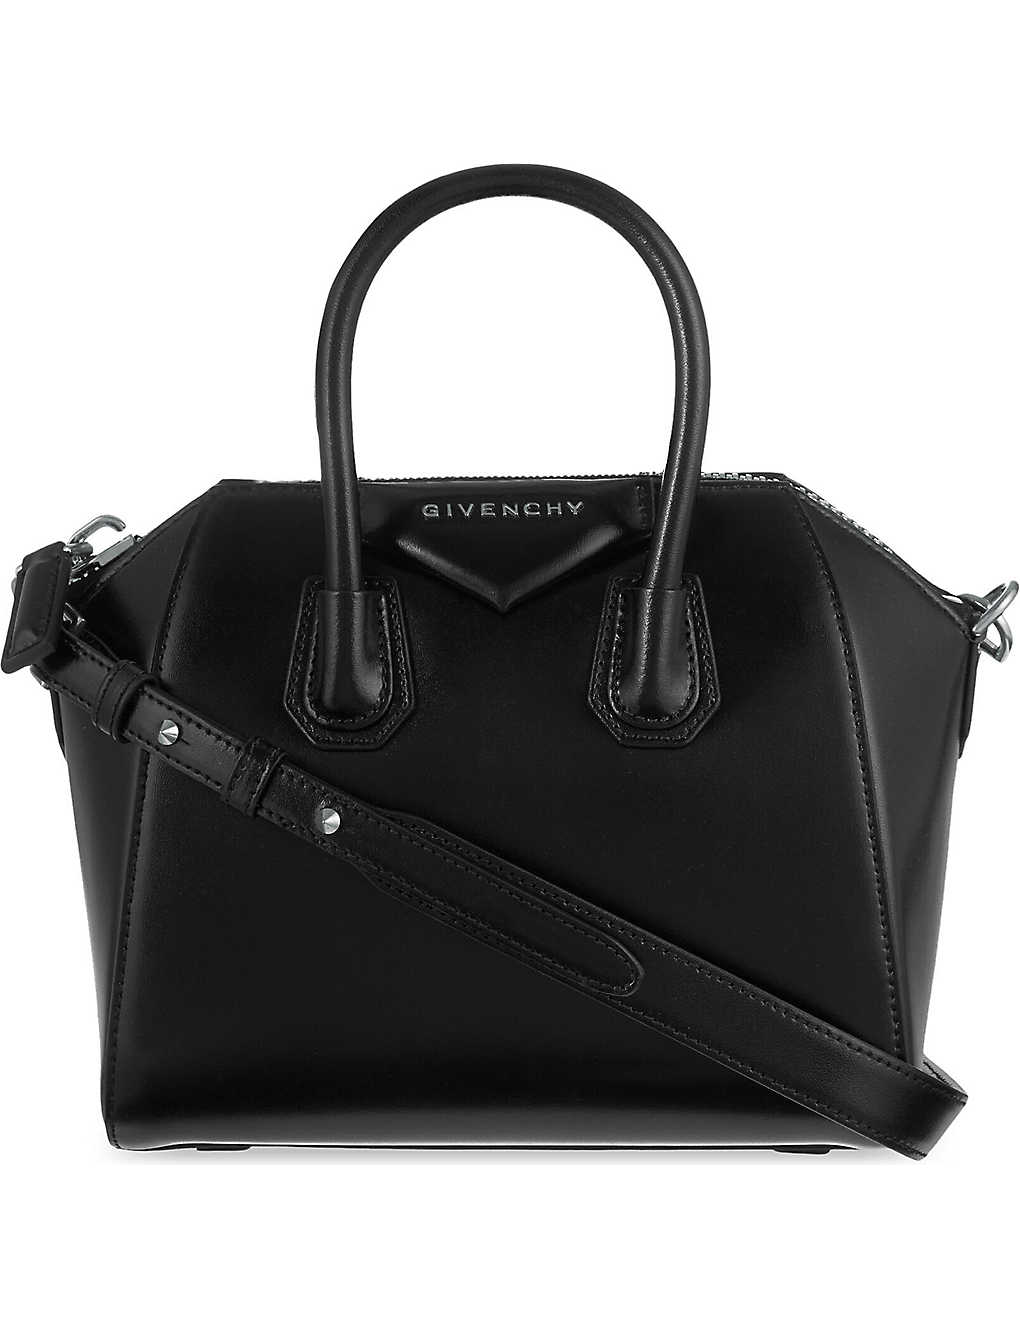 54ae8779ef2 GIVENCHY - Antigona mini leather tote   Selfridges.com